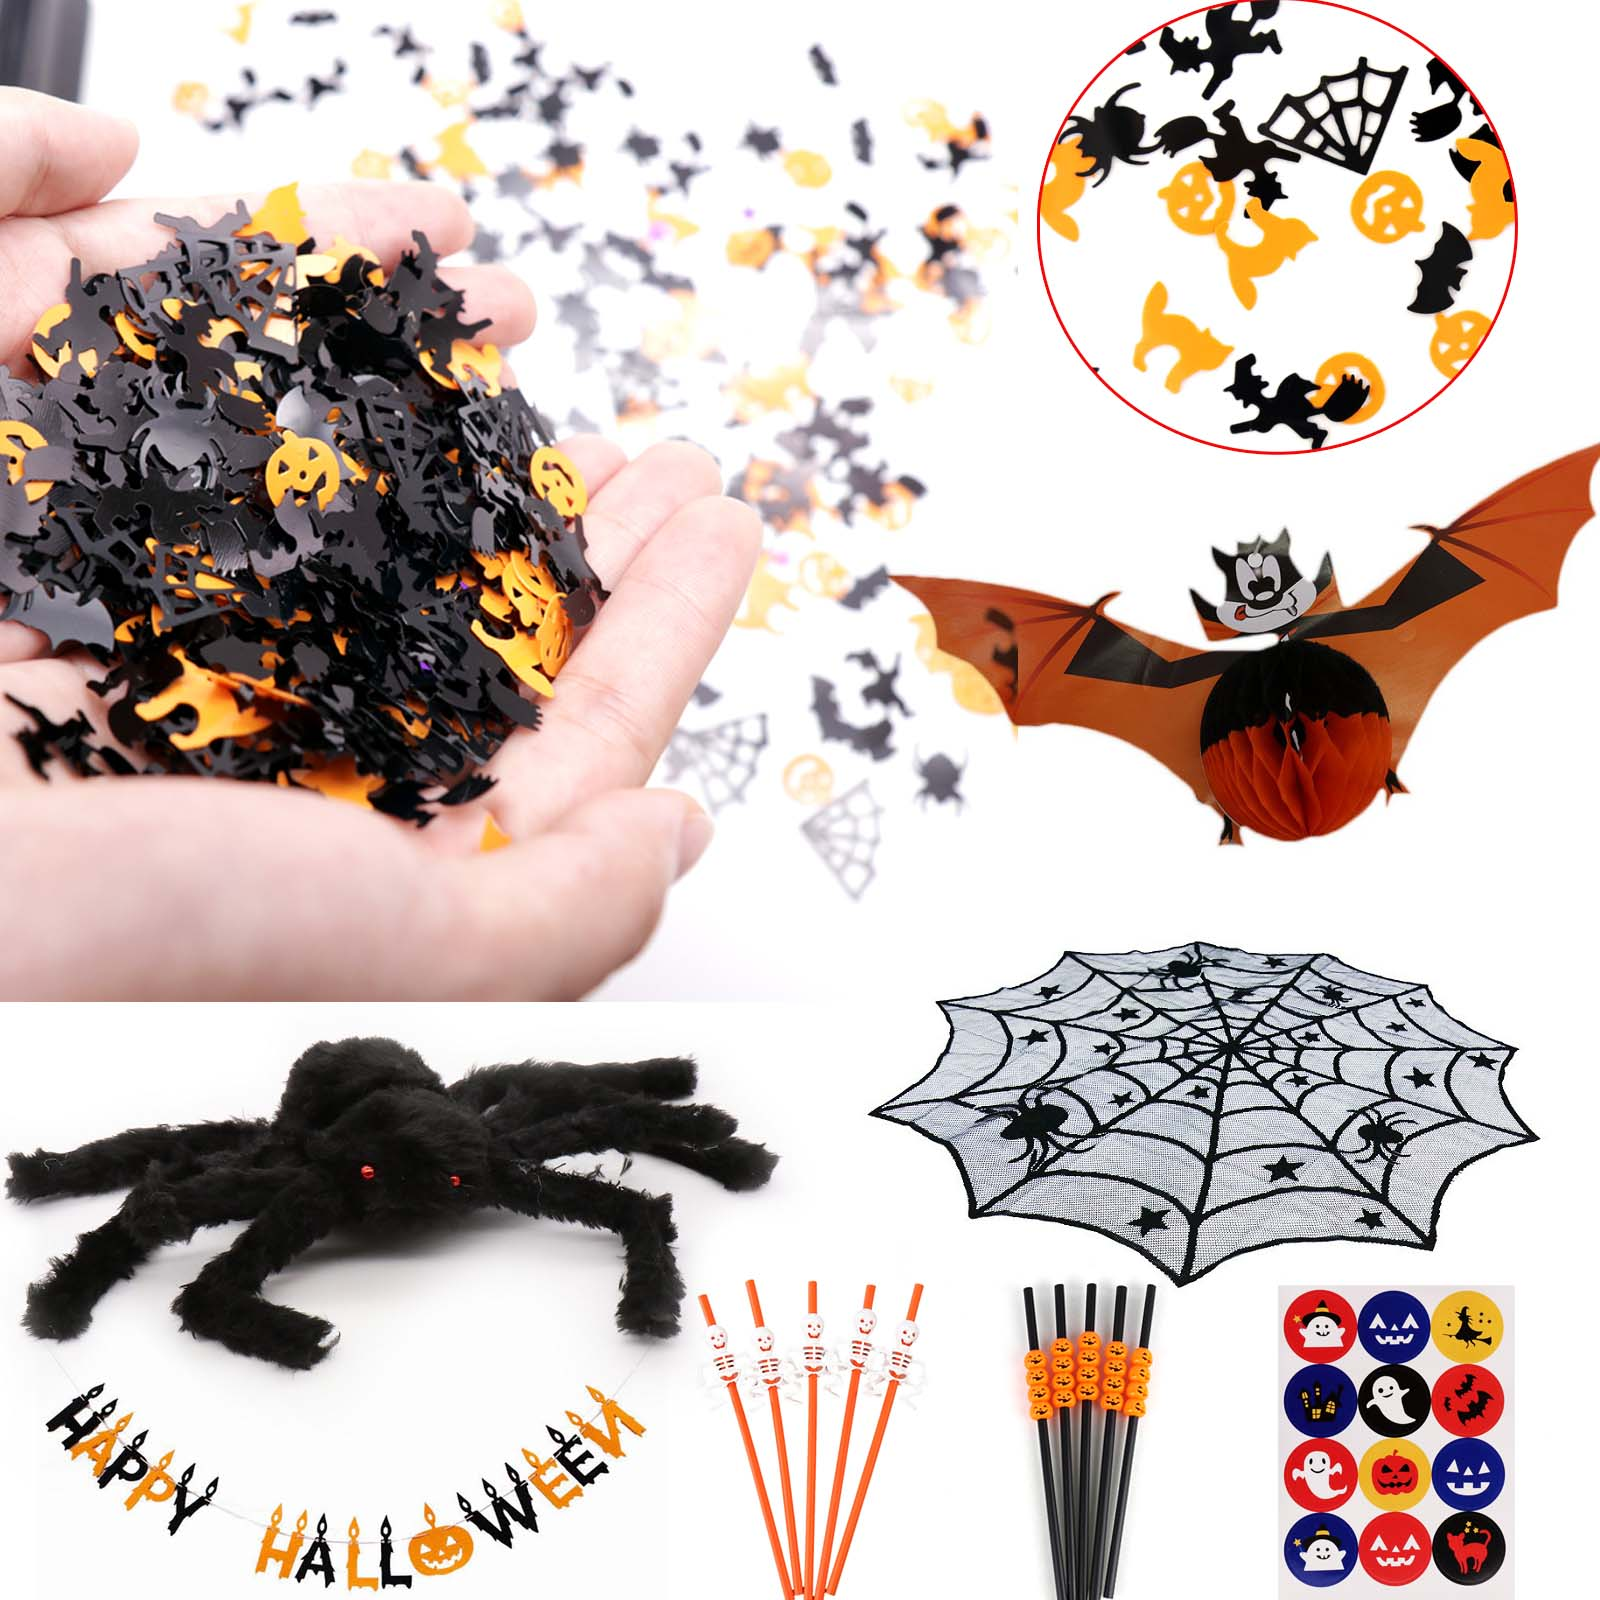 15g Spooky Halloween Confetti Pumpkin Spider Web Witch Bat Throw Confetti Sprinkle Home Festival Party Supplies Table Decoration